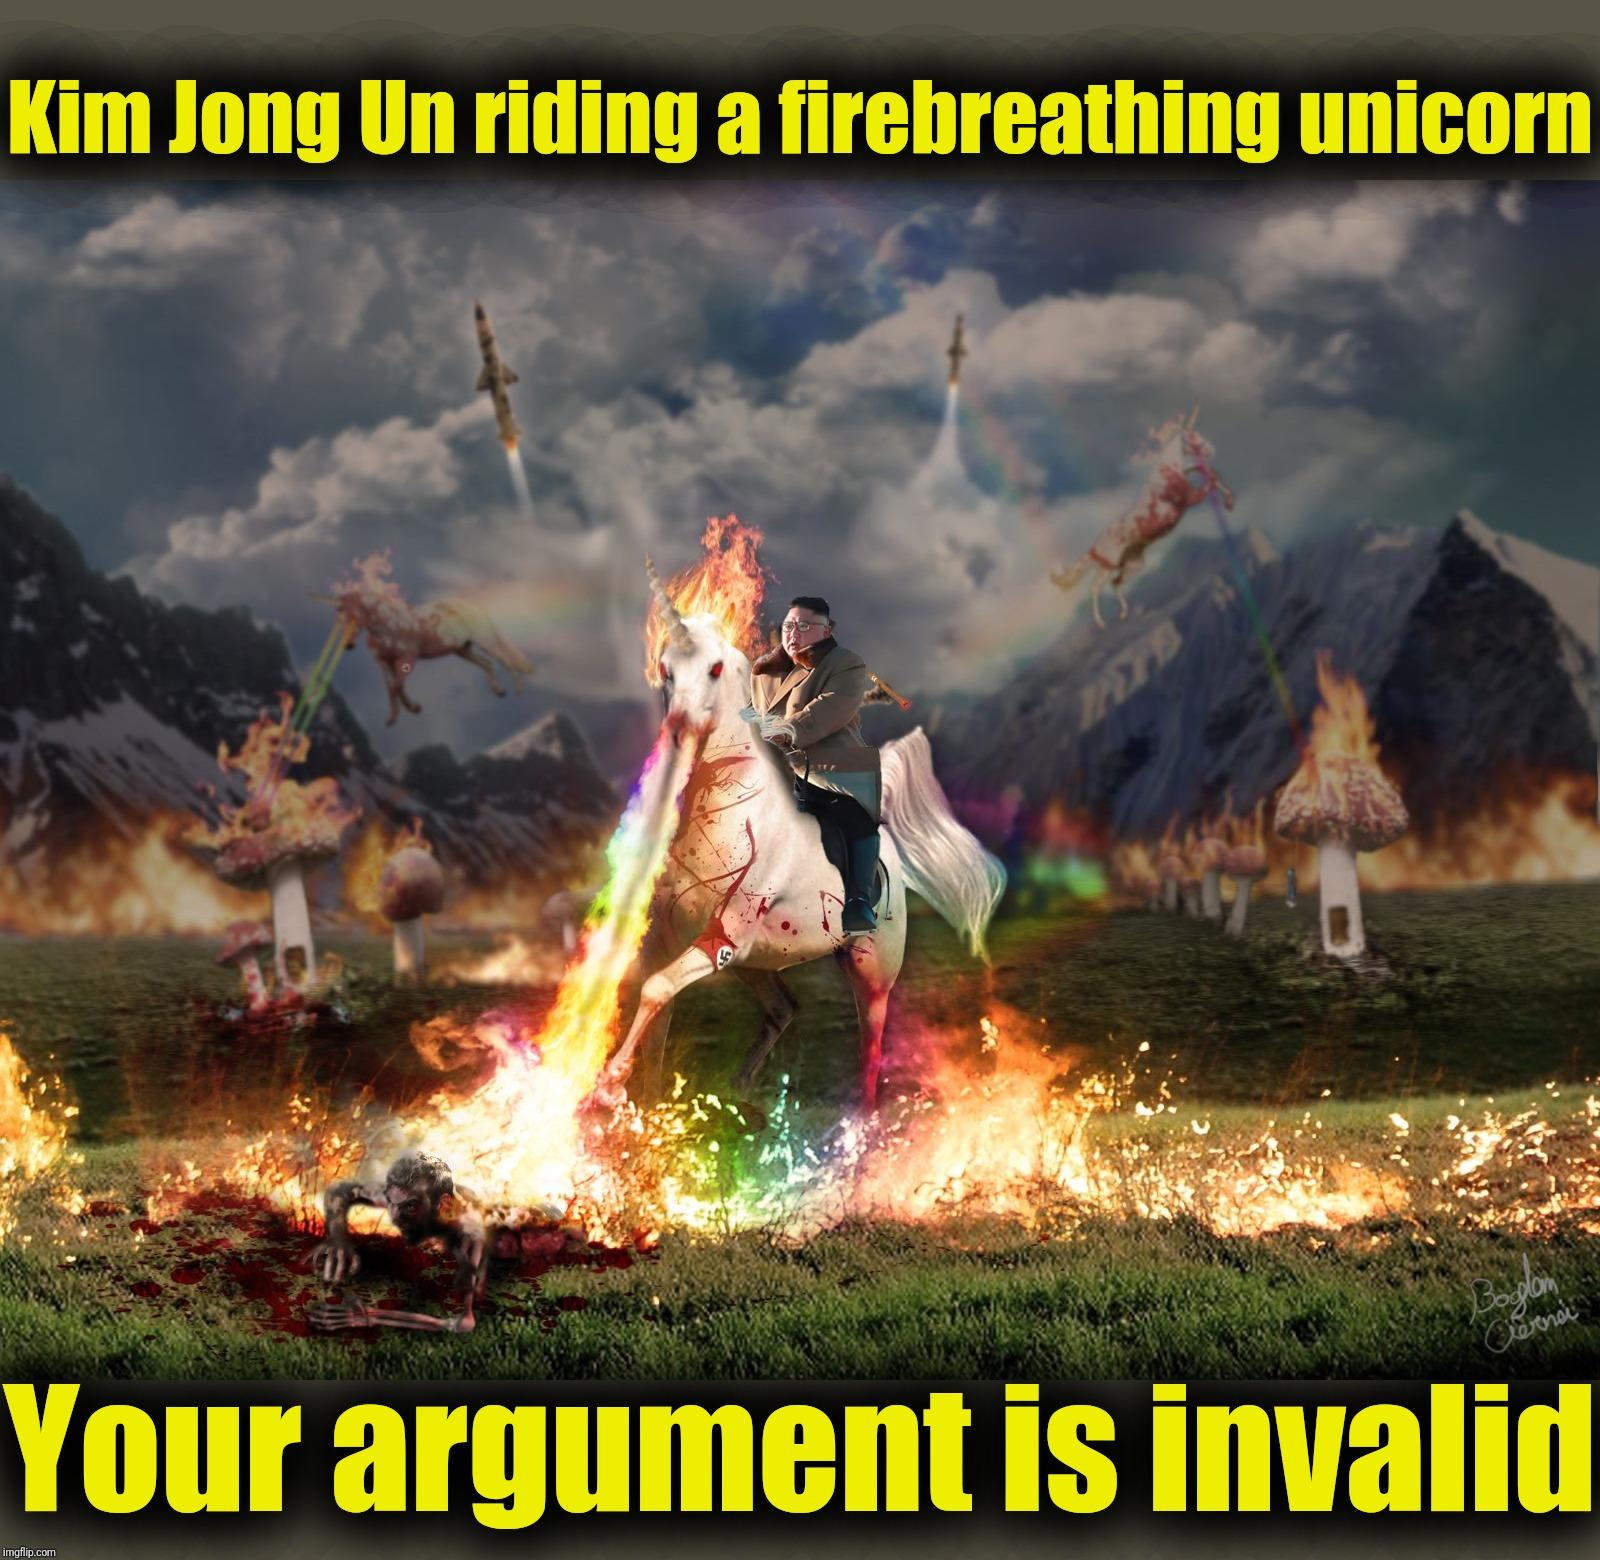 Kim Jong Un rides again |  Kim Jong Un riding a firebreathing unicorn; Your argument is invalid | image tagged in kim jong un,north korea,sacred mountain,your argument is invalid,unicorn | made w/ Imgflip meme maker